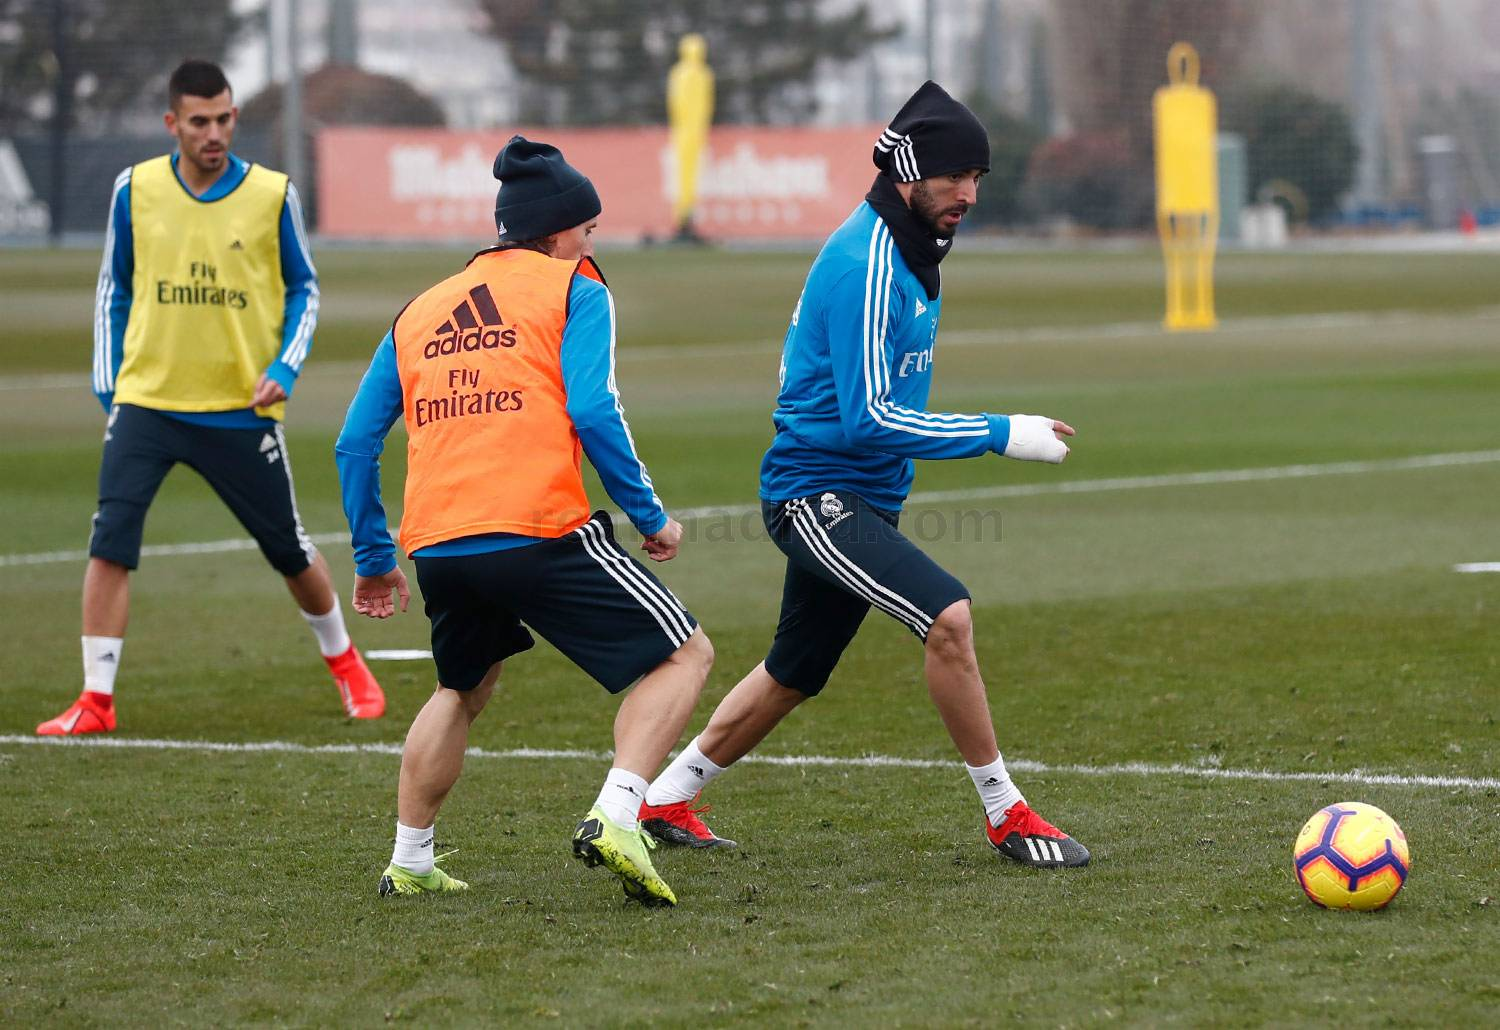 Real Madrid - Entrenamiento del Real Madrid - 17-01-2019